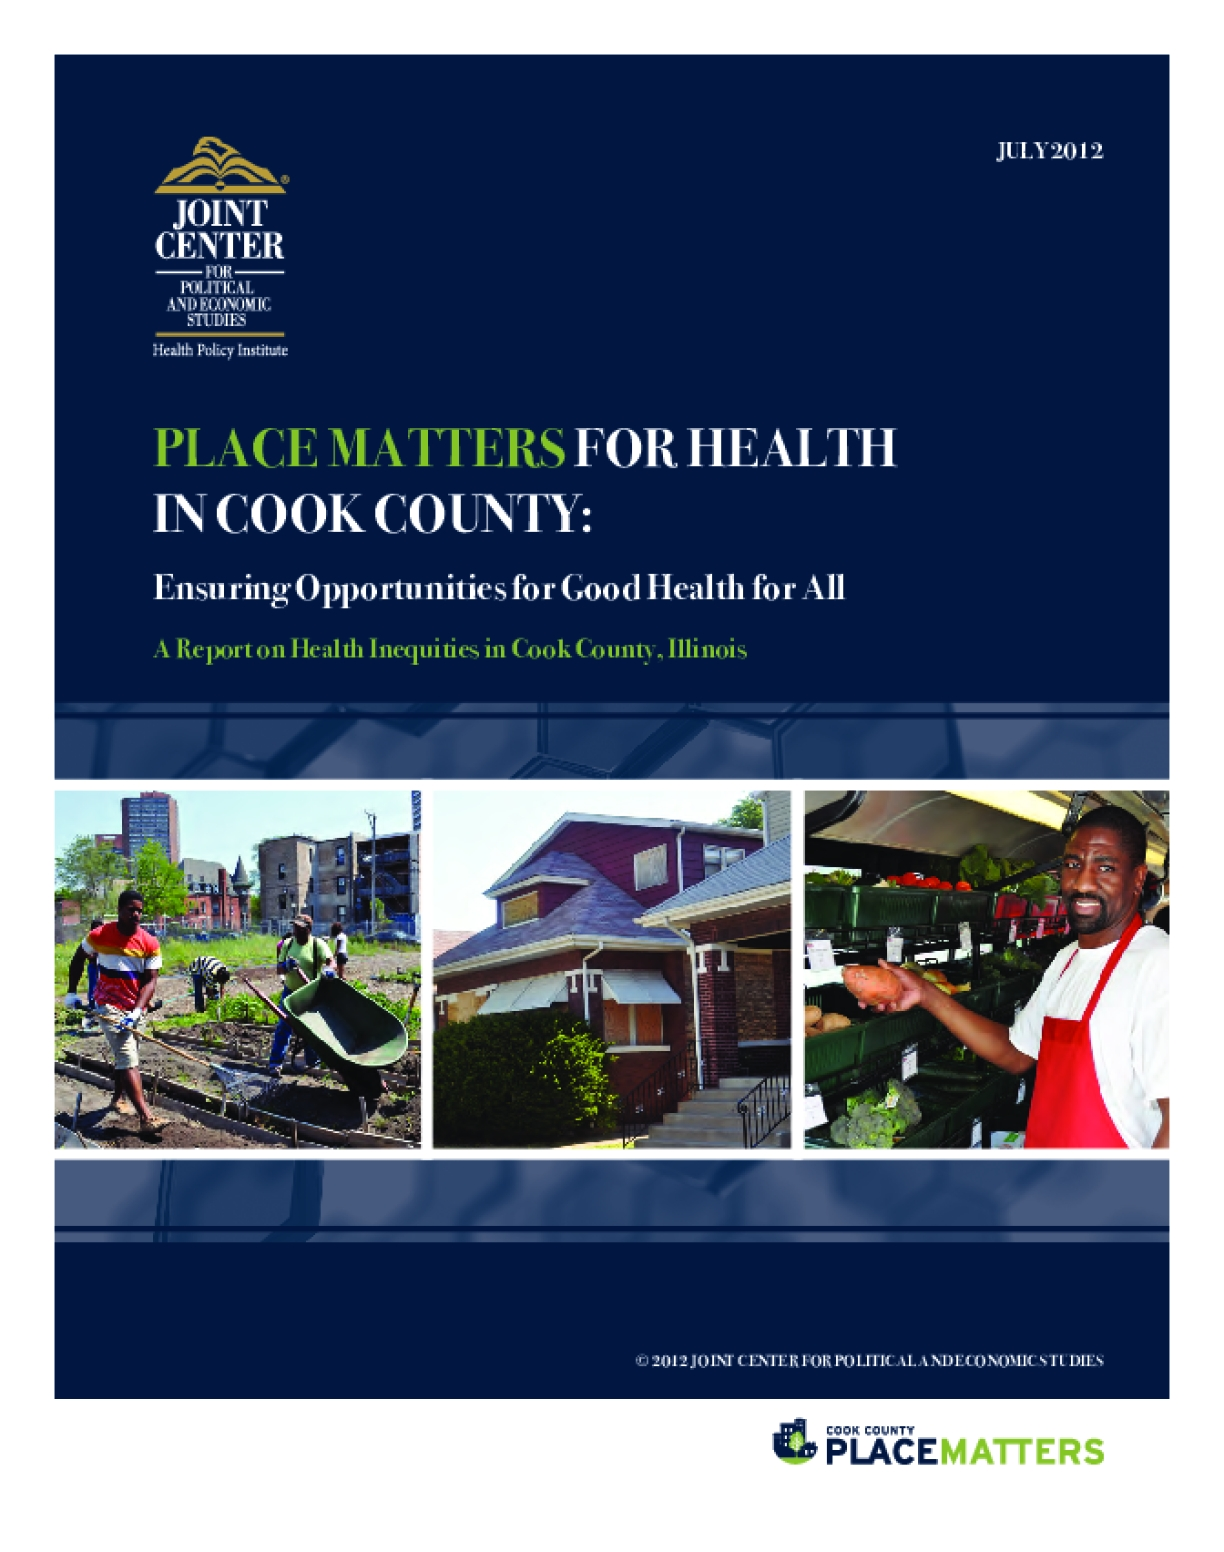 Place Matters for Health in Cook County: Ensuring Opportunities for Good Health for All, A Report on Health Inequities in Cook County, Illinois